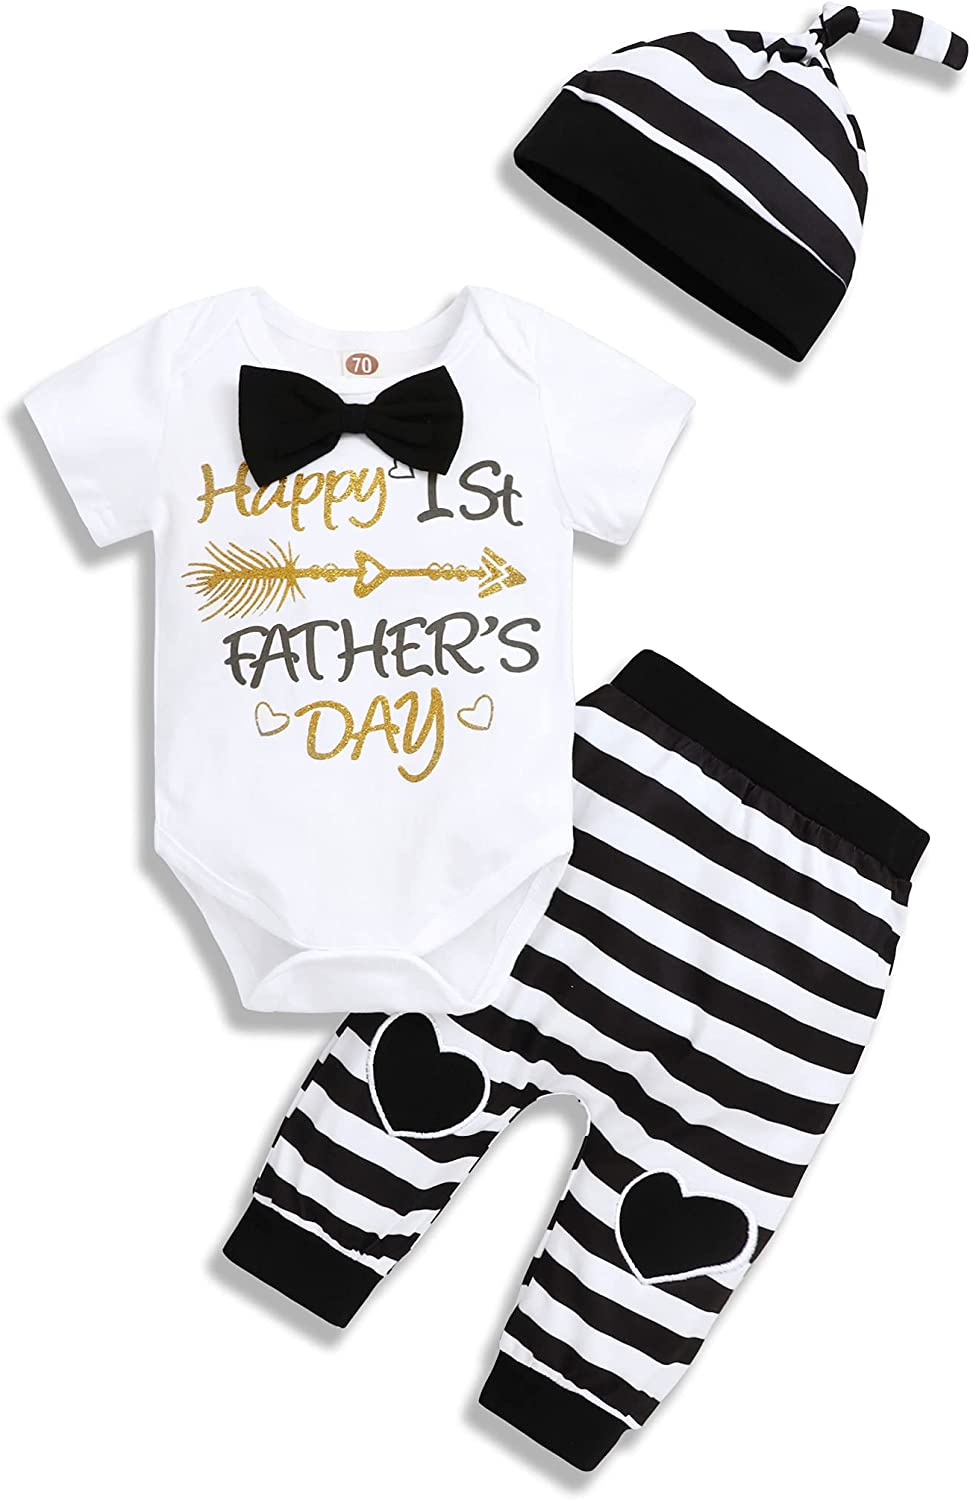 Newborn Baby Boy Clothes Outfits Infant Romper Onsies Bodysuit Letter Happy Father's Day